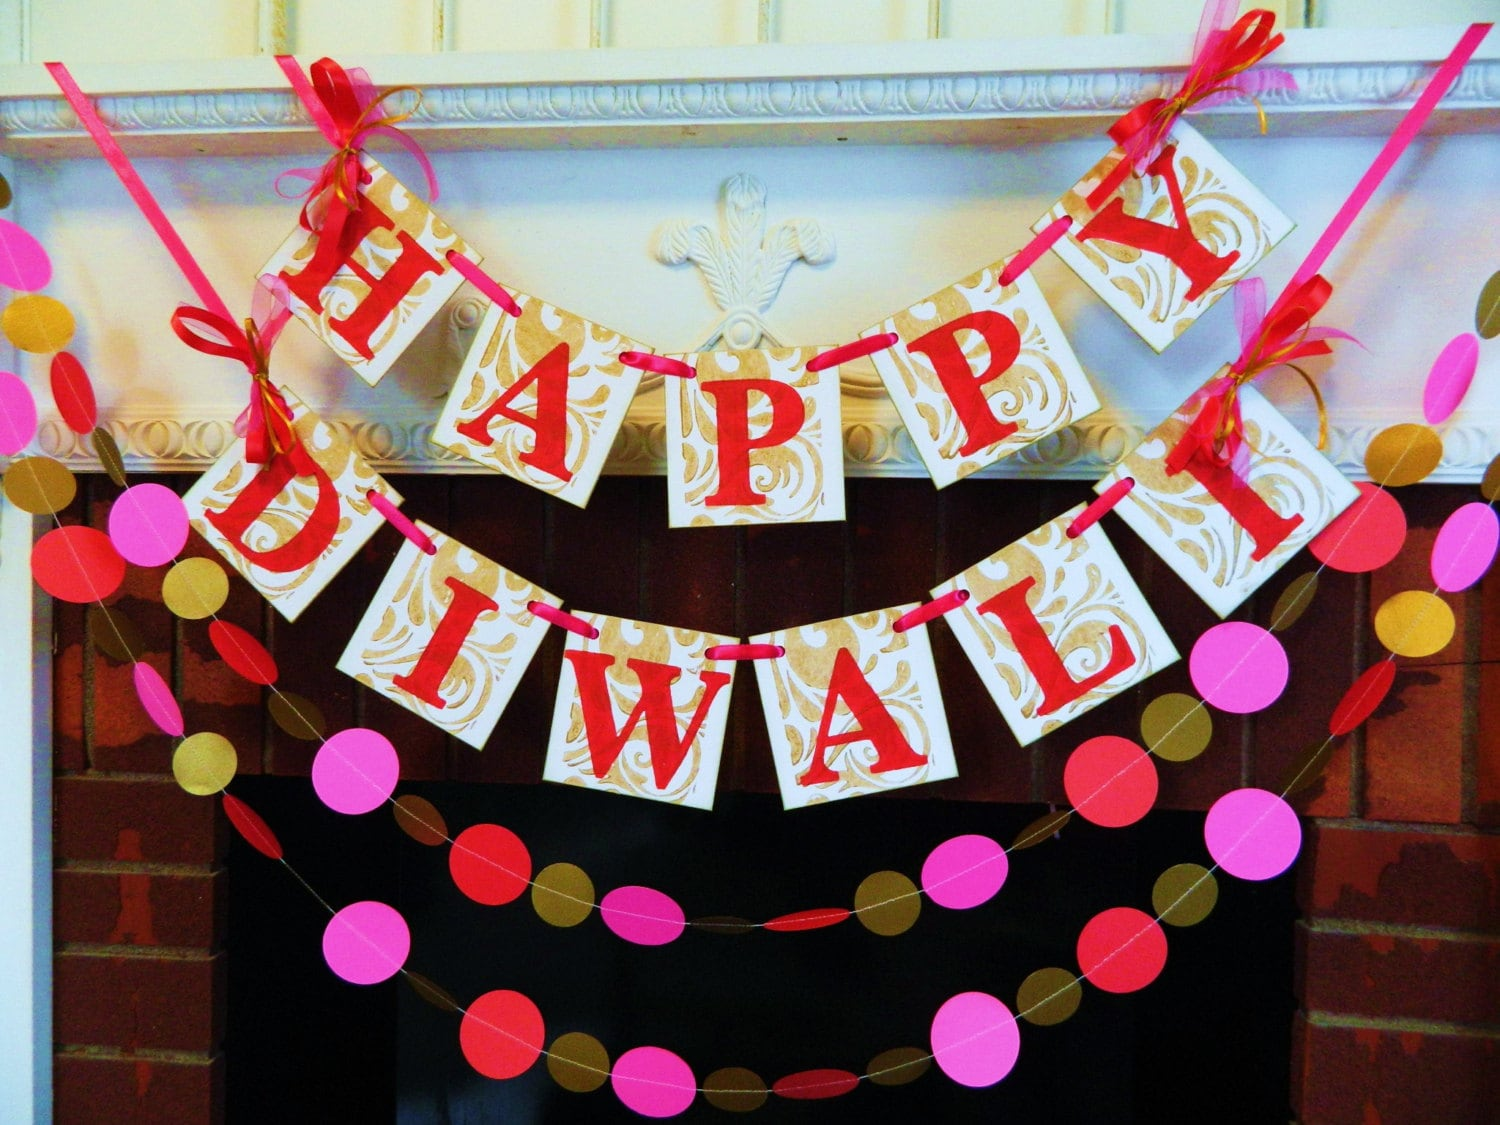 Diwali decorations happy diwali banner festival of lights zoom kristyandbryce Image collections